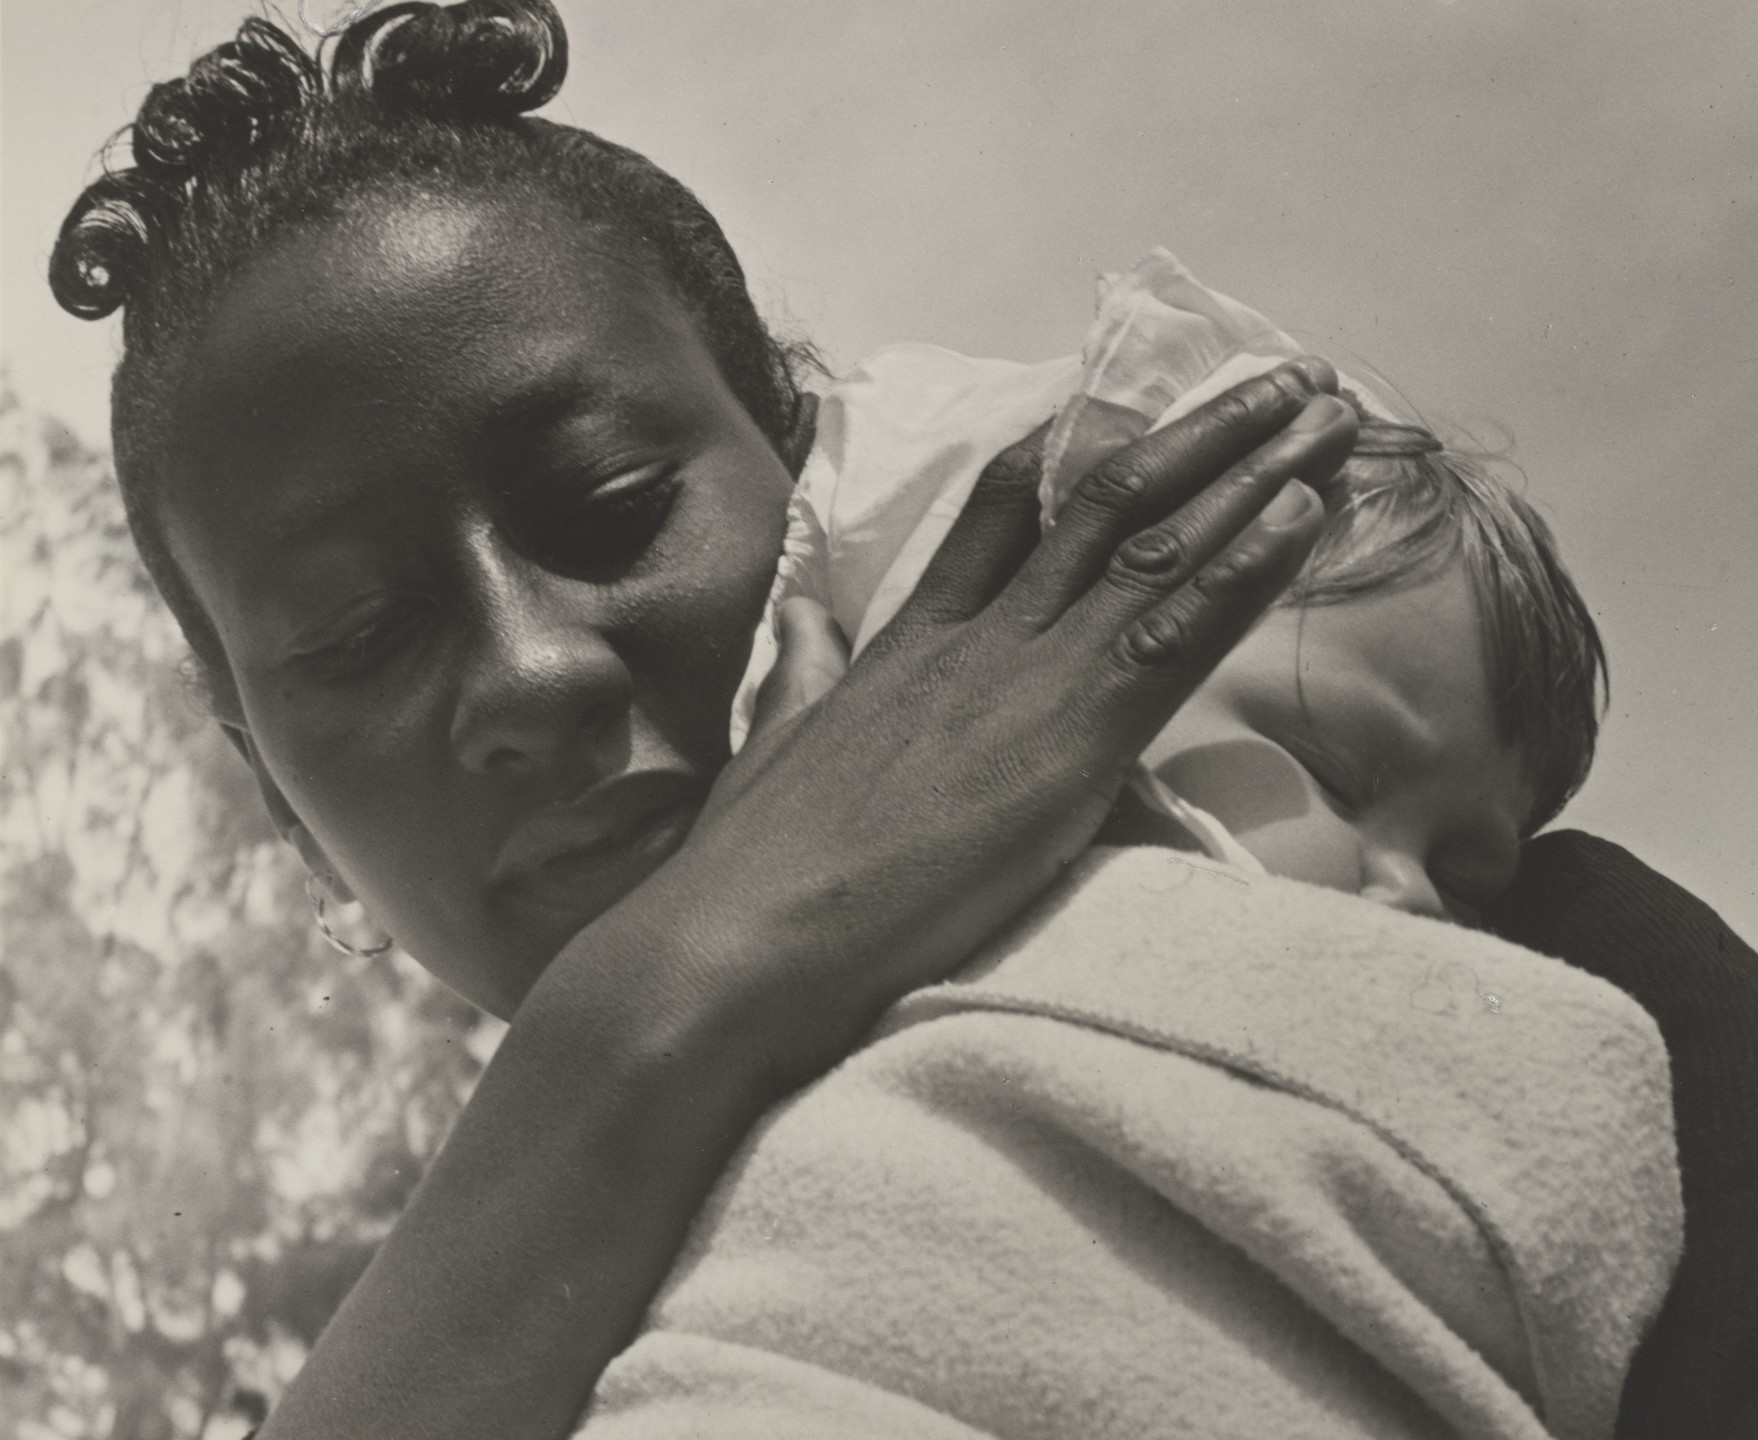 Black and white picture by Ruth Bernhard